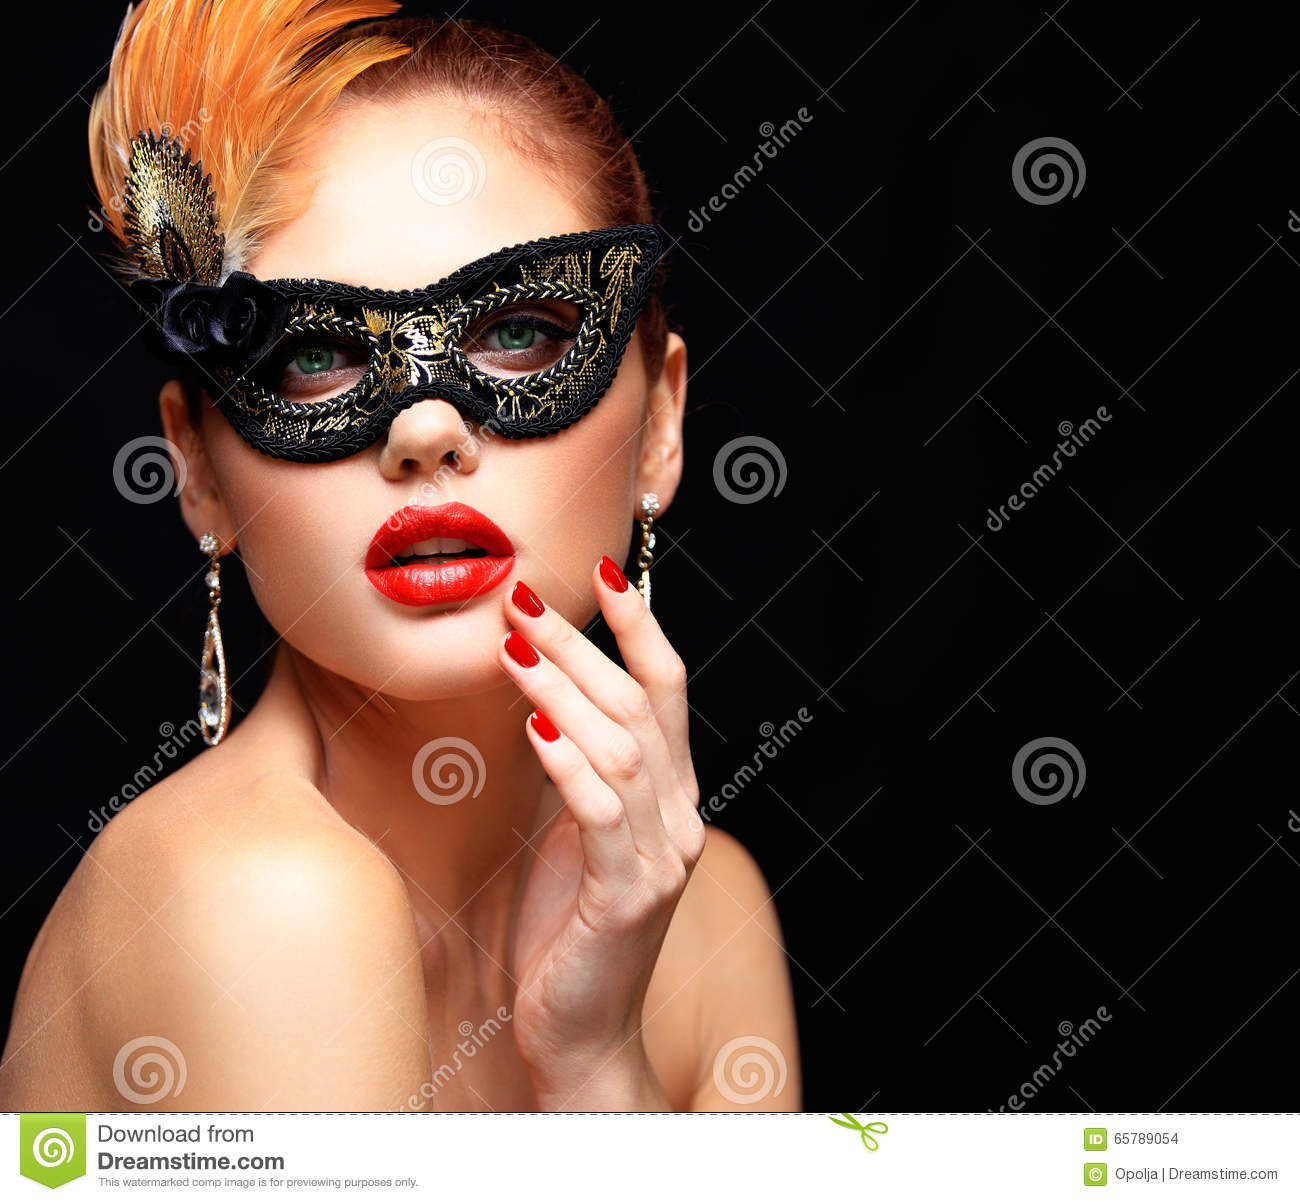 Beauty model woman wearing venetian masquerade carnival mask at party isolated on black background. Christmas and New